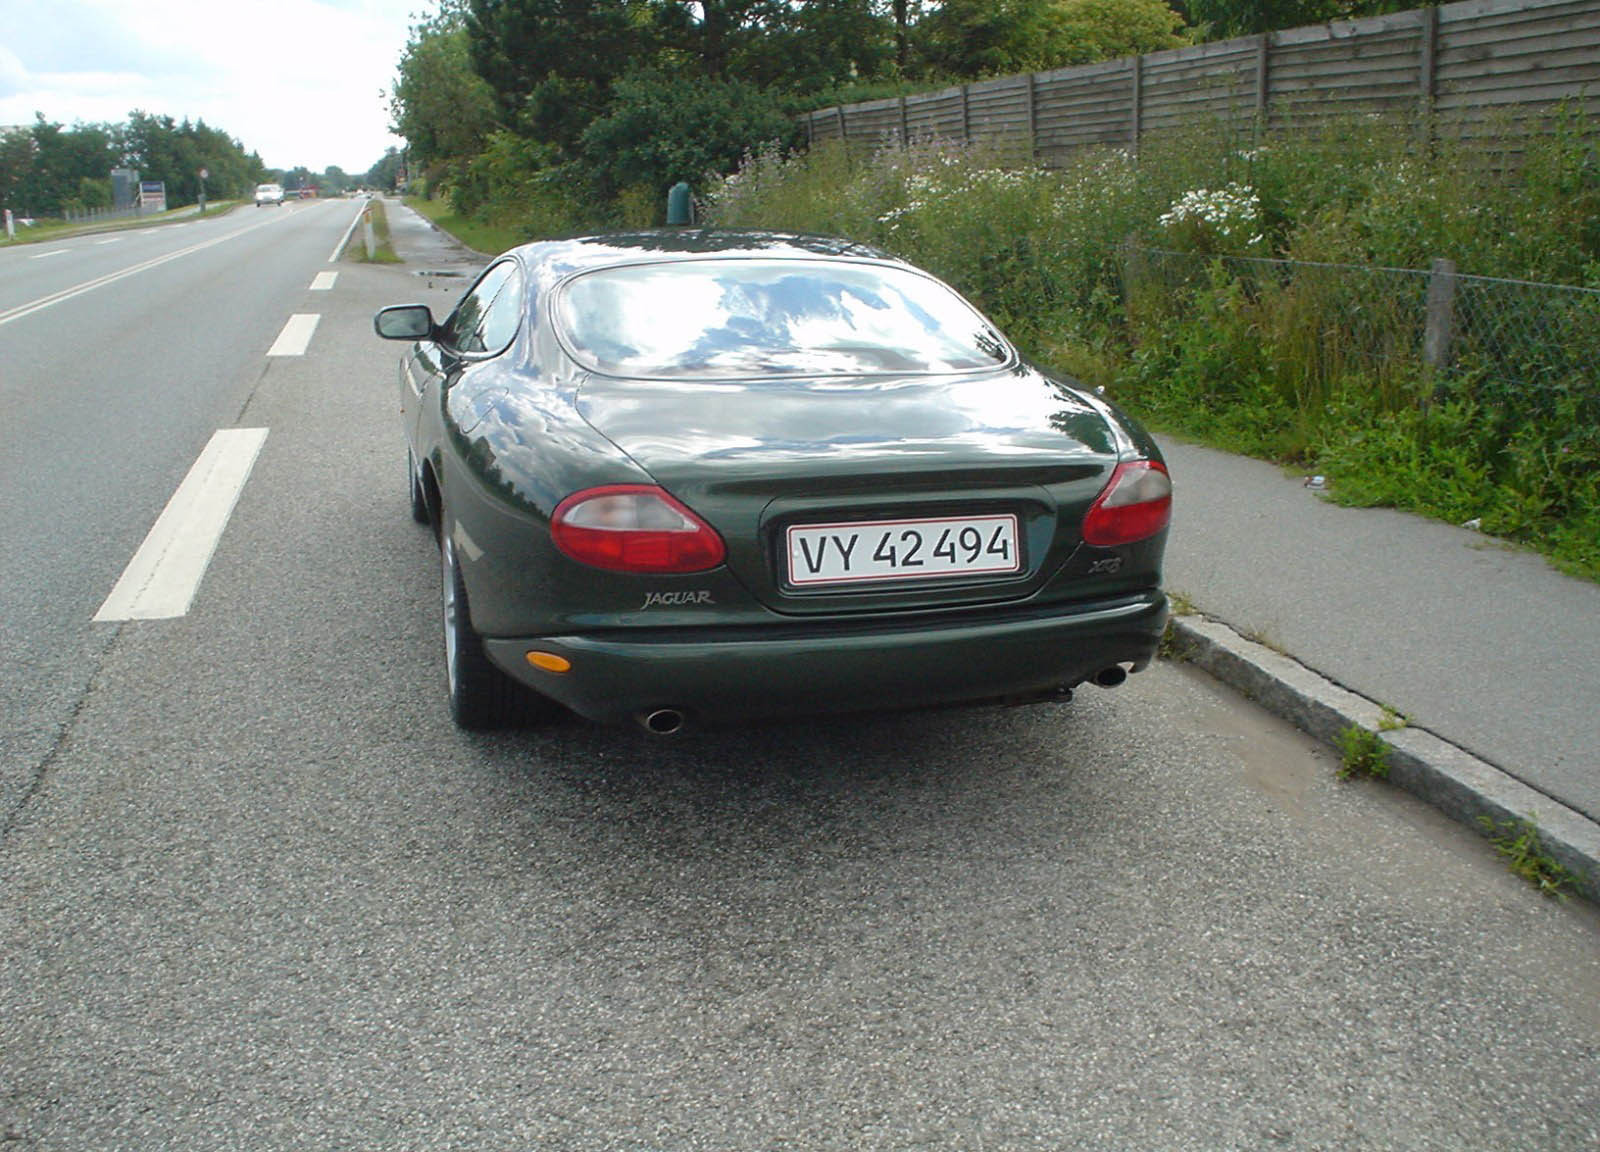 1997 Jaguar XK8 | Top Speed